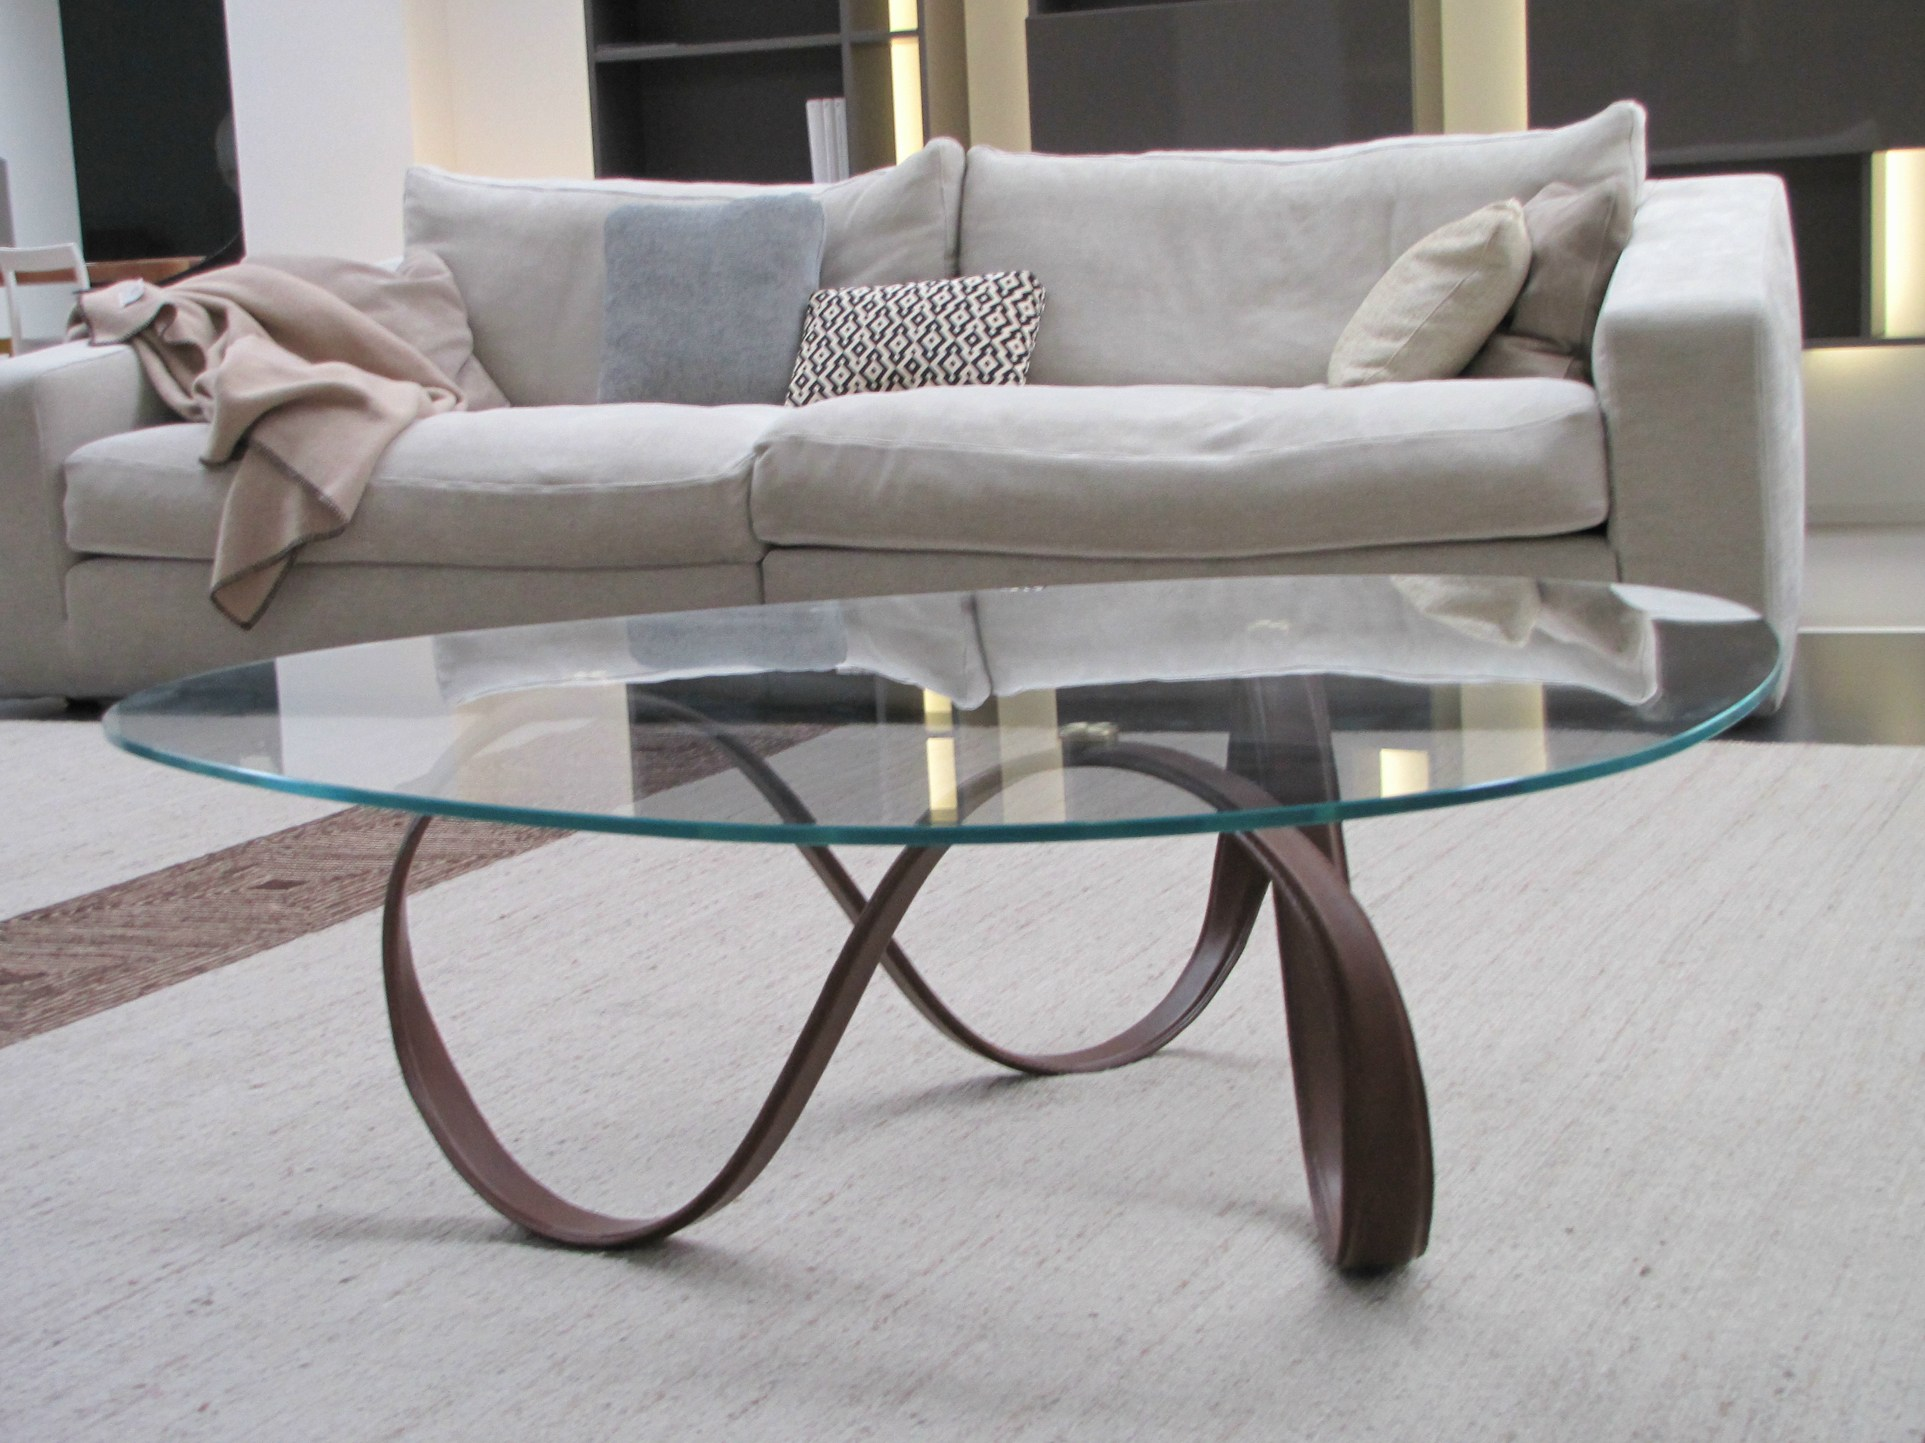 glass table sets for living room with sectionals 30 coffee tables that bring transparency to your blending in